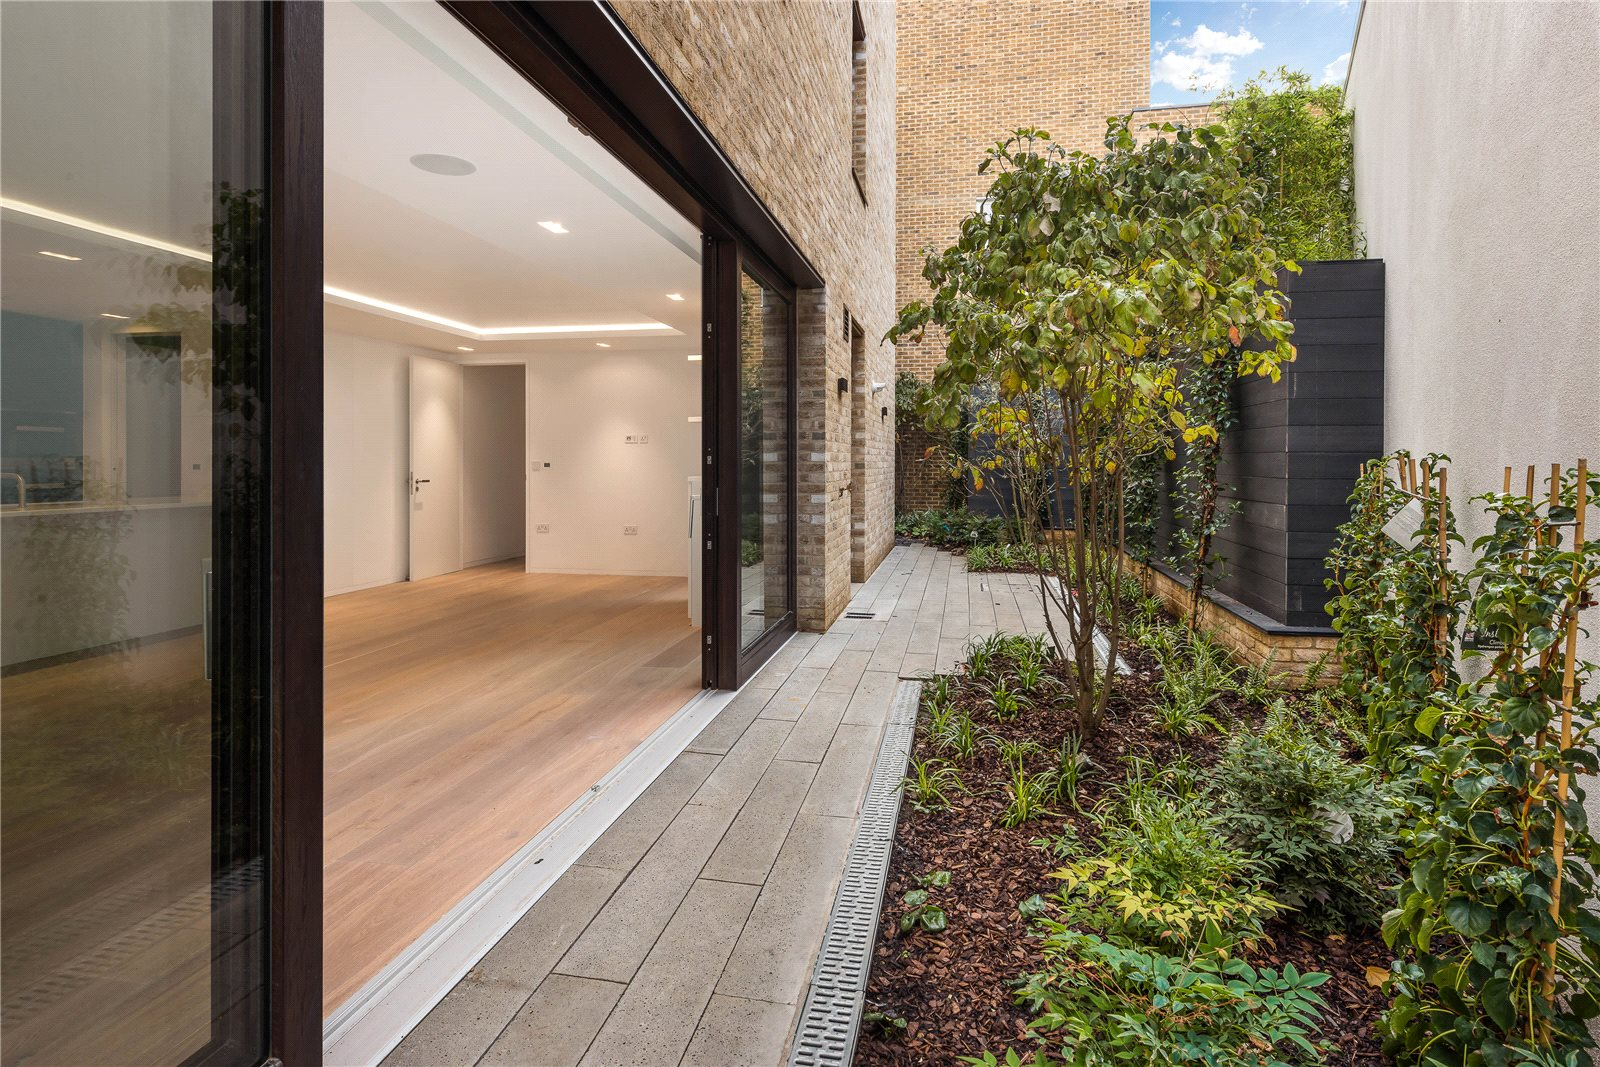 Additional photo for property listing at Victoria Mews, Notting Hill, London, W11 Notting Hill, London, England